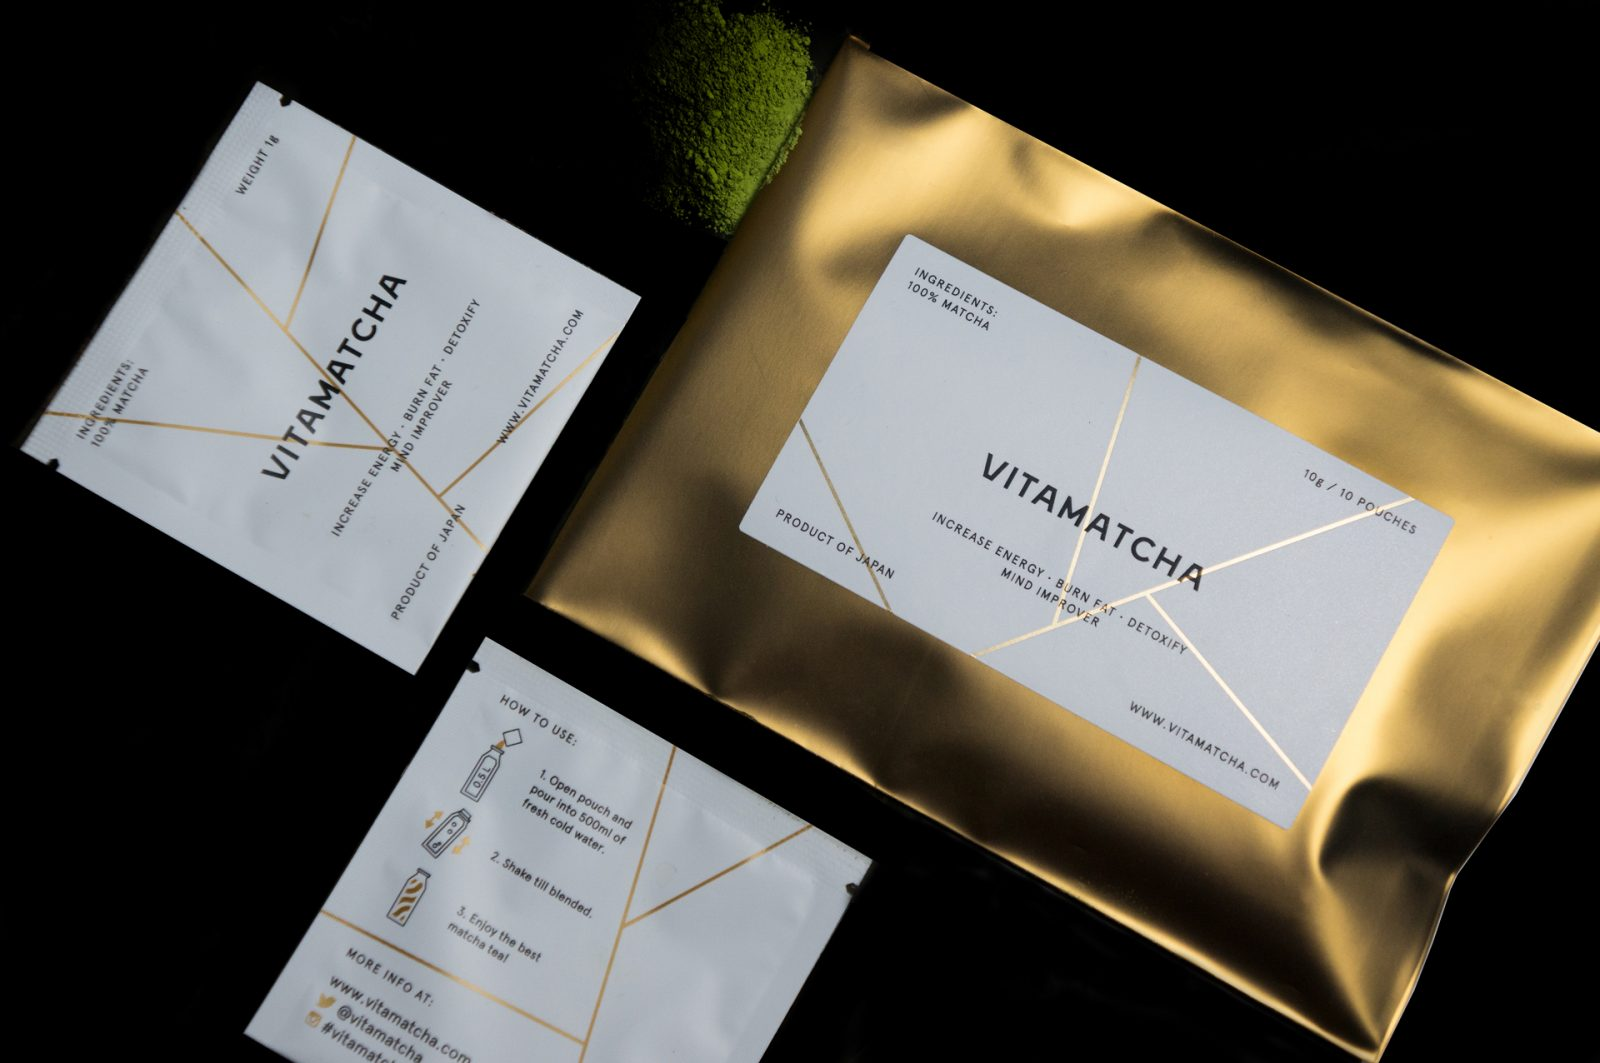 Fashionable Health Drink Vitamatcha Identity by Commercial Magic